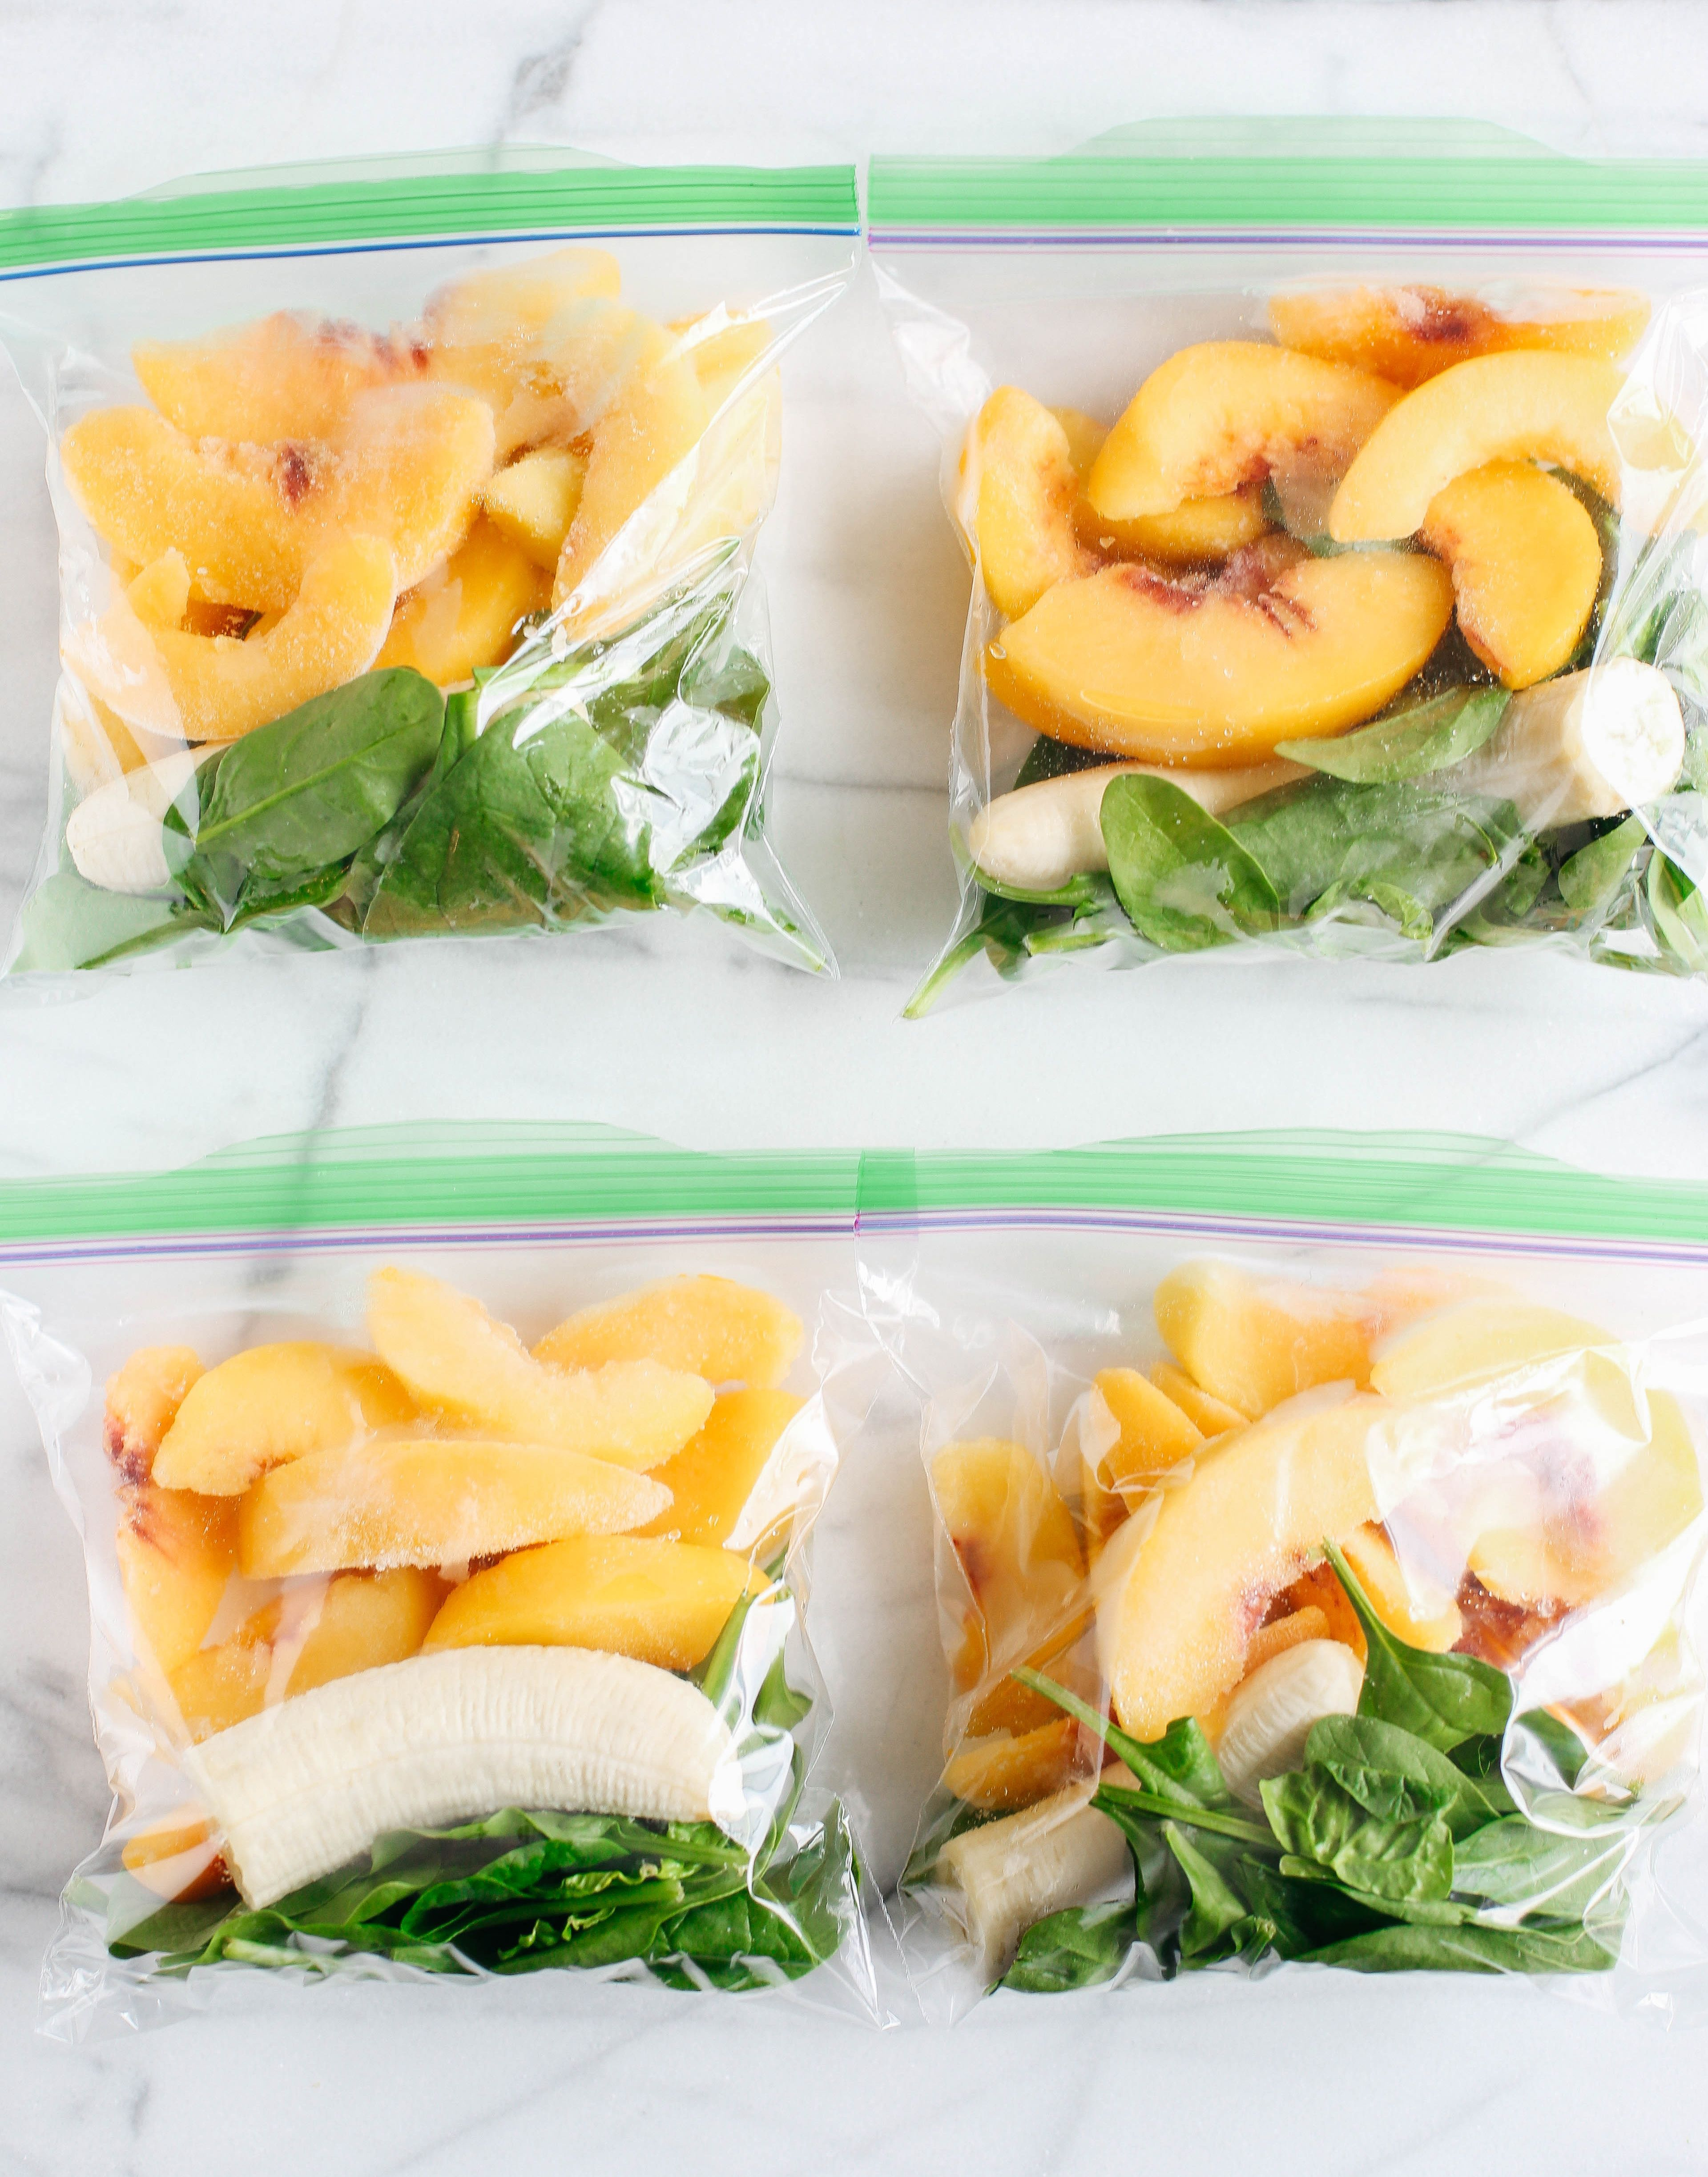 Frozen smoothie packs sure make meal prep a breeze this